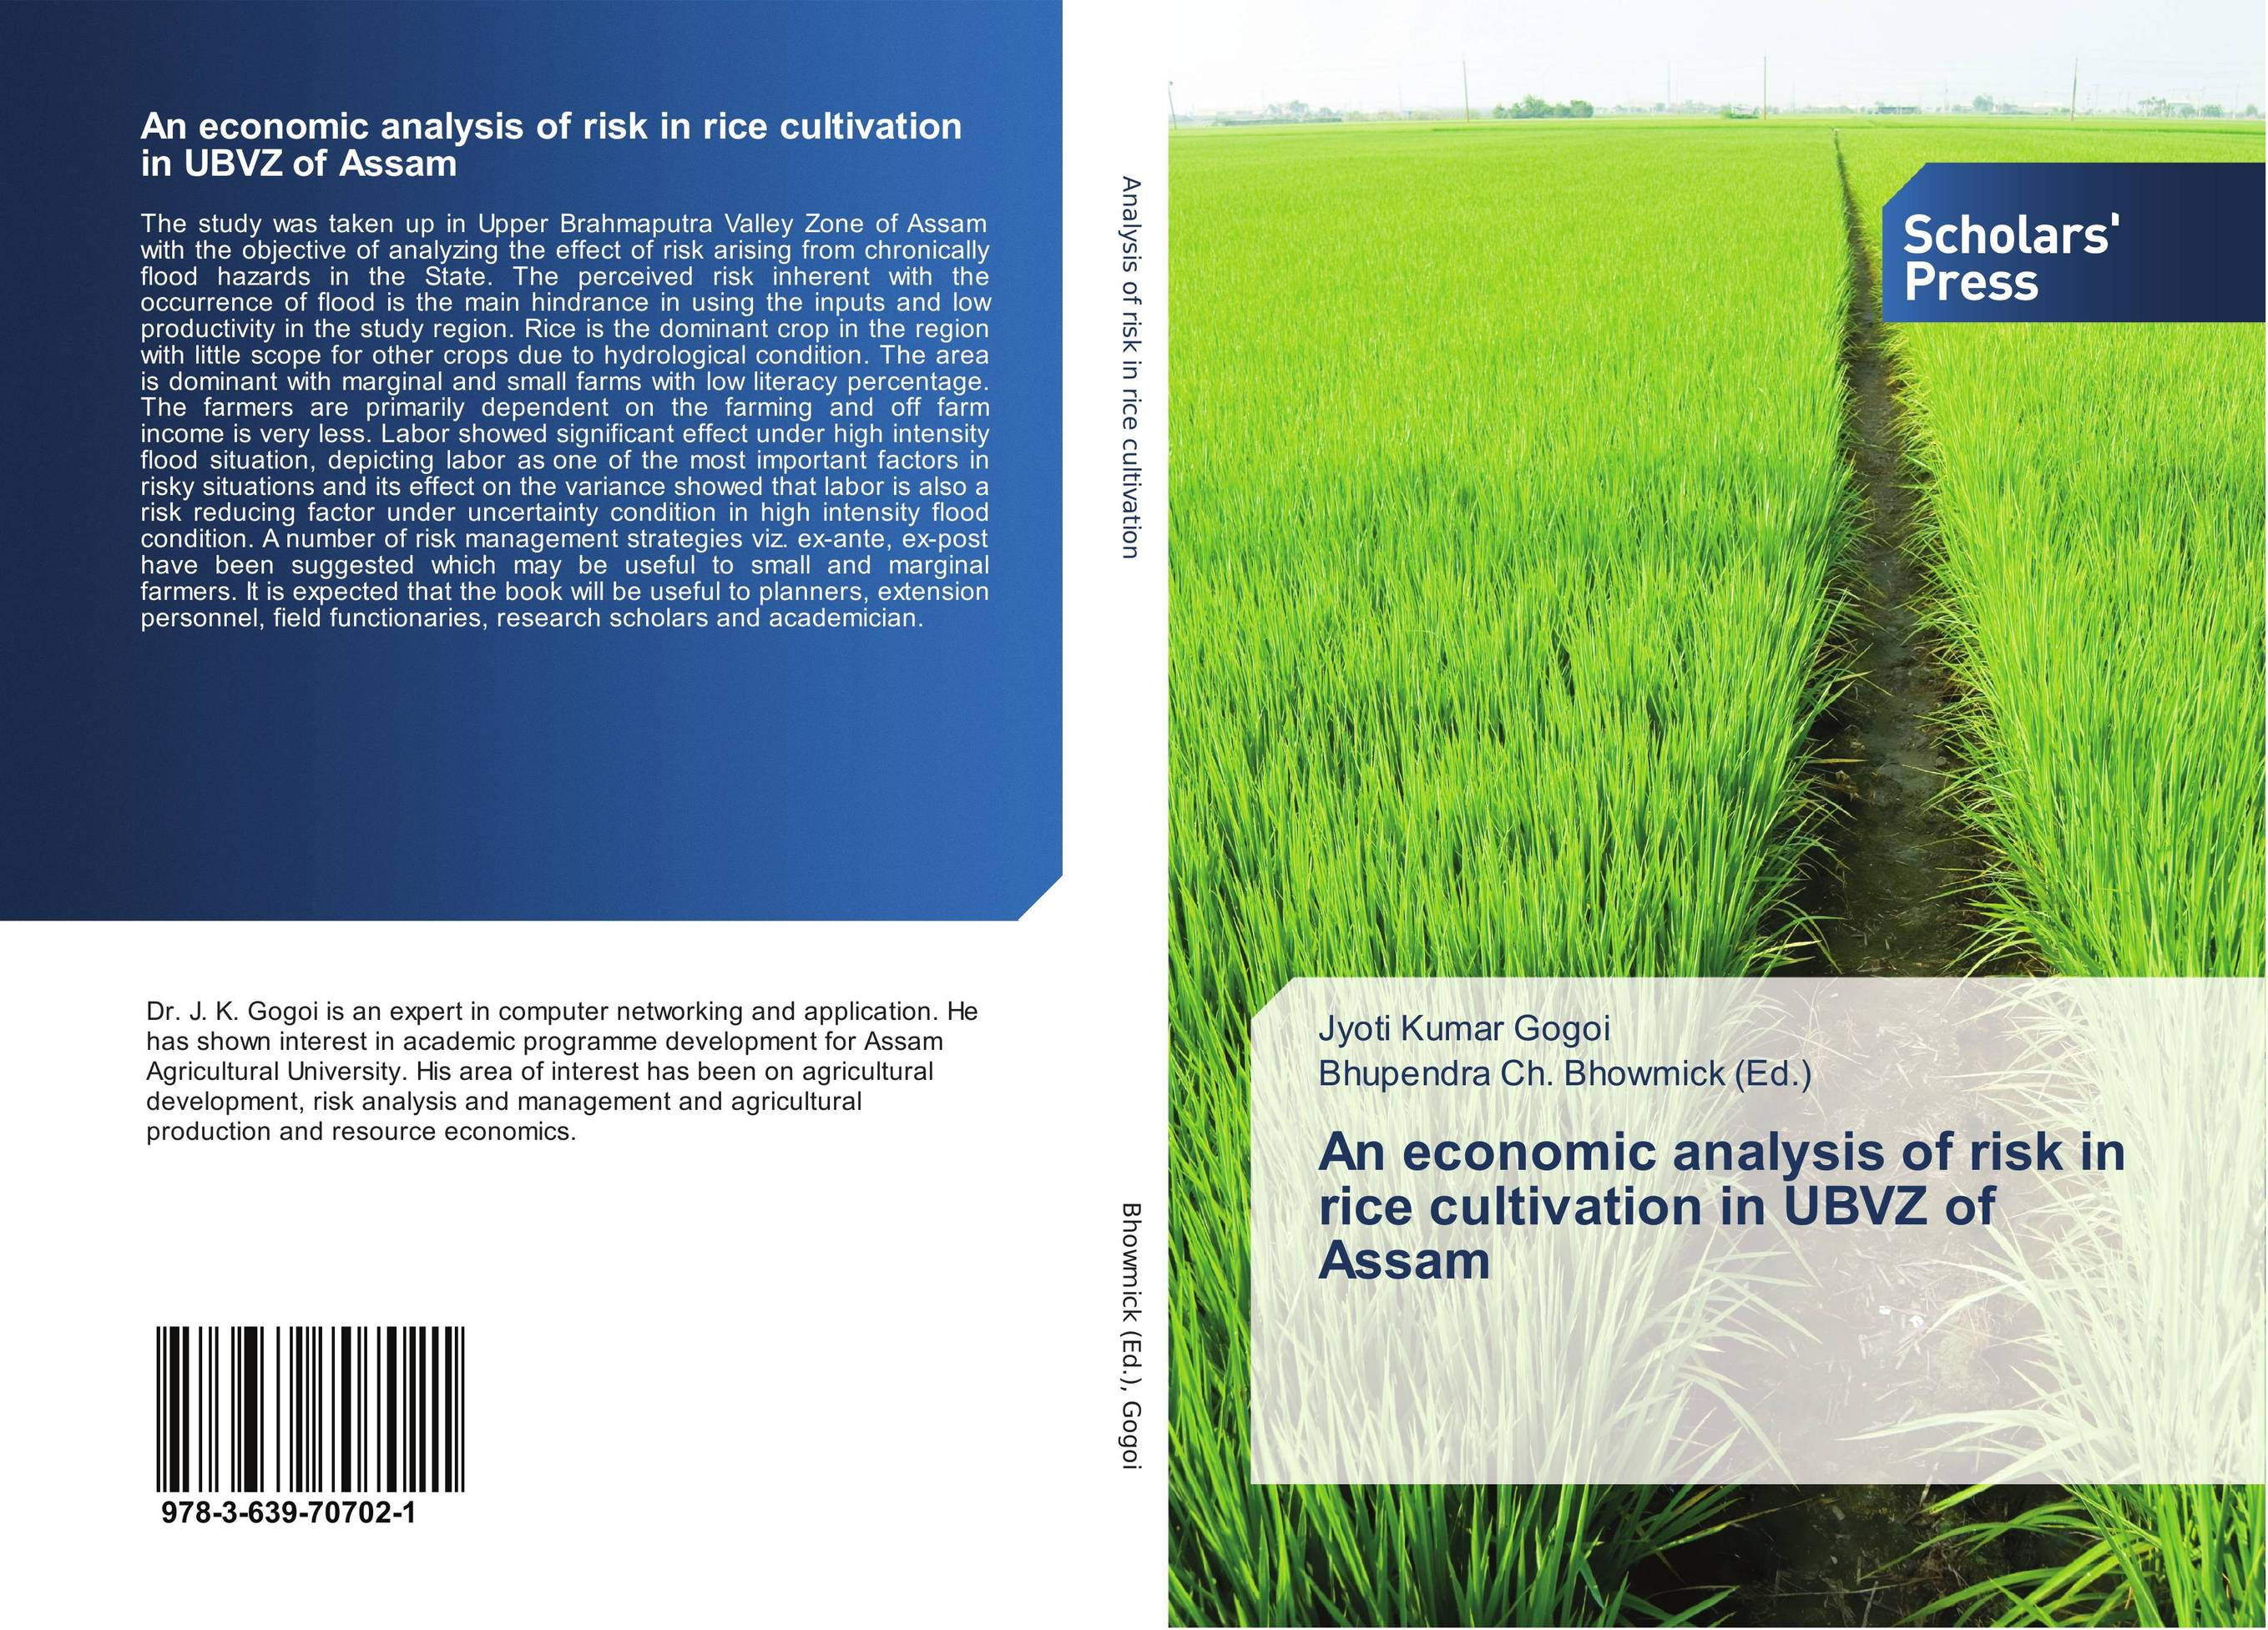 An economic analysis of risk in rice cultivation in UBVZ of Assam risk analysis study of maritime traffic